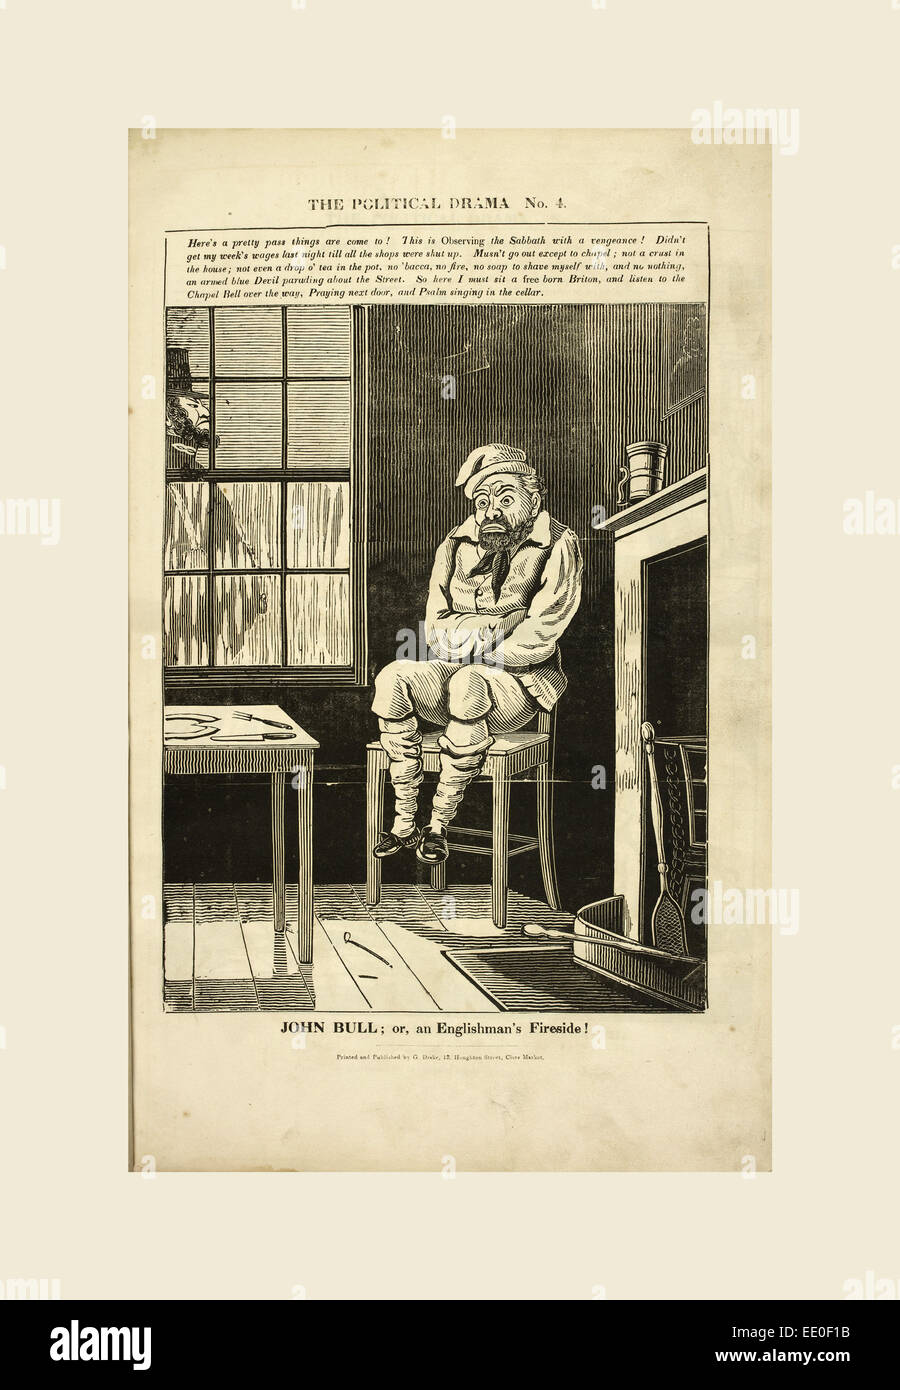 The Political drama. A series of caricatures, 'John Bull or an Englishman's fireside!' In a room an - Stock Image